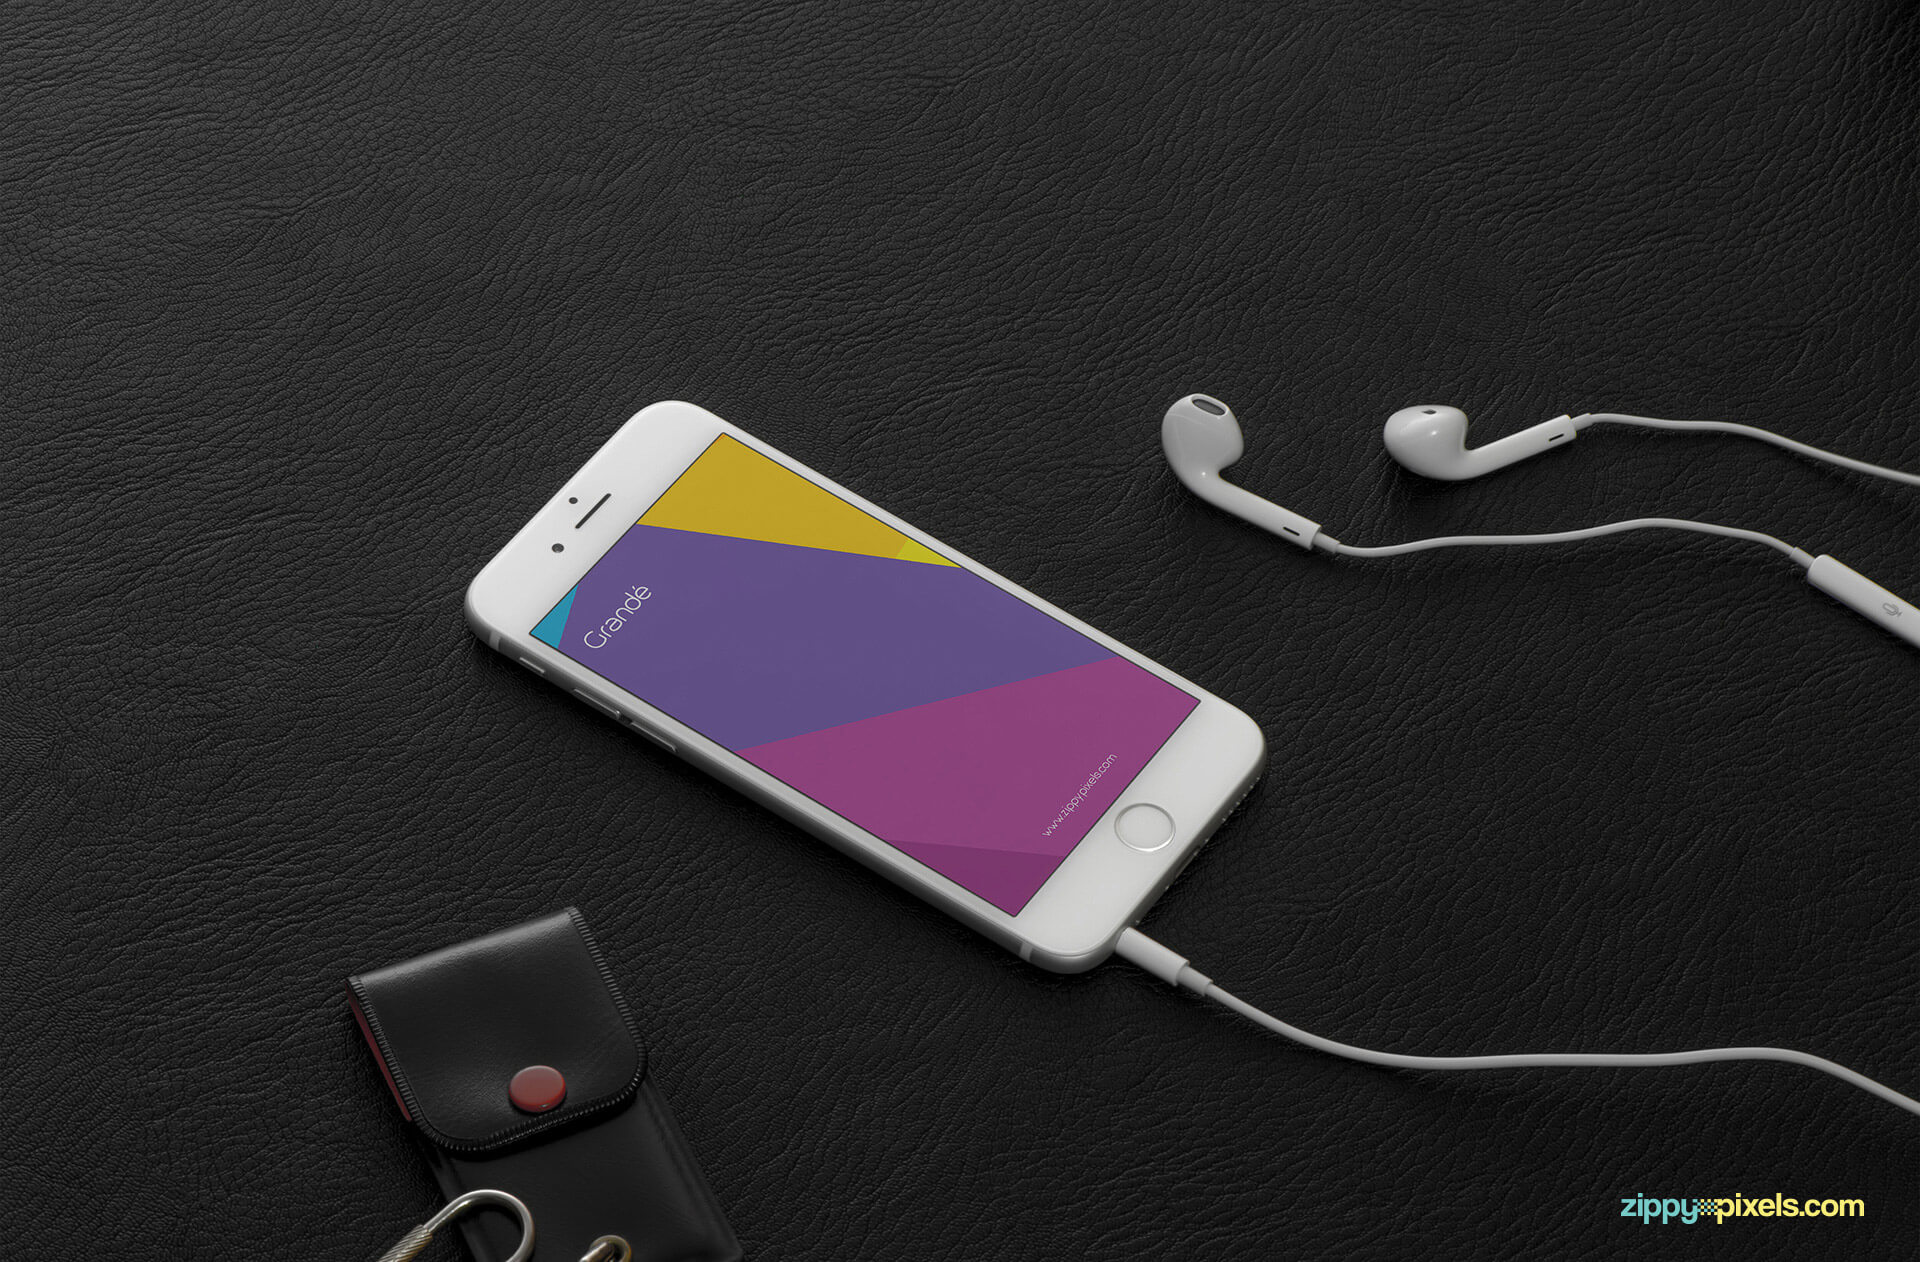 iPhone 6s screen perspective mockups